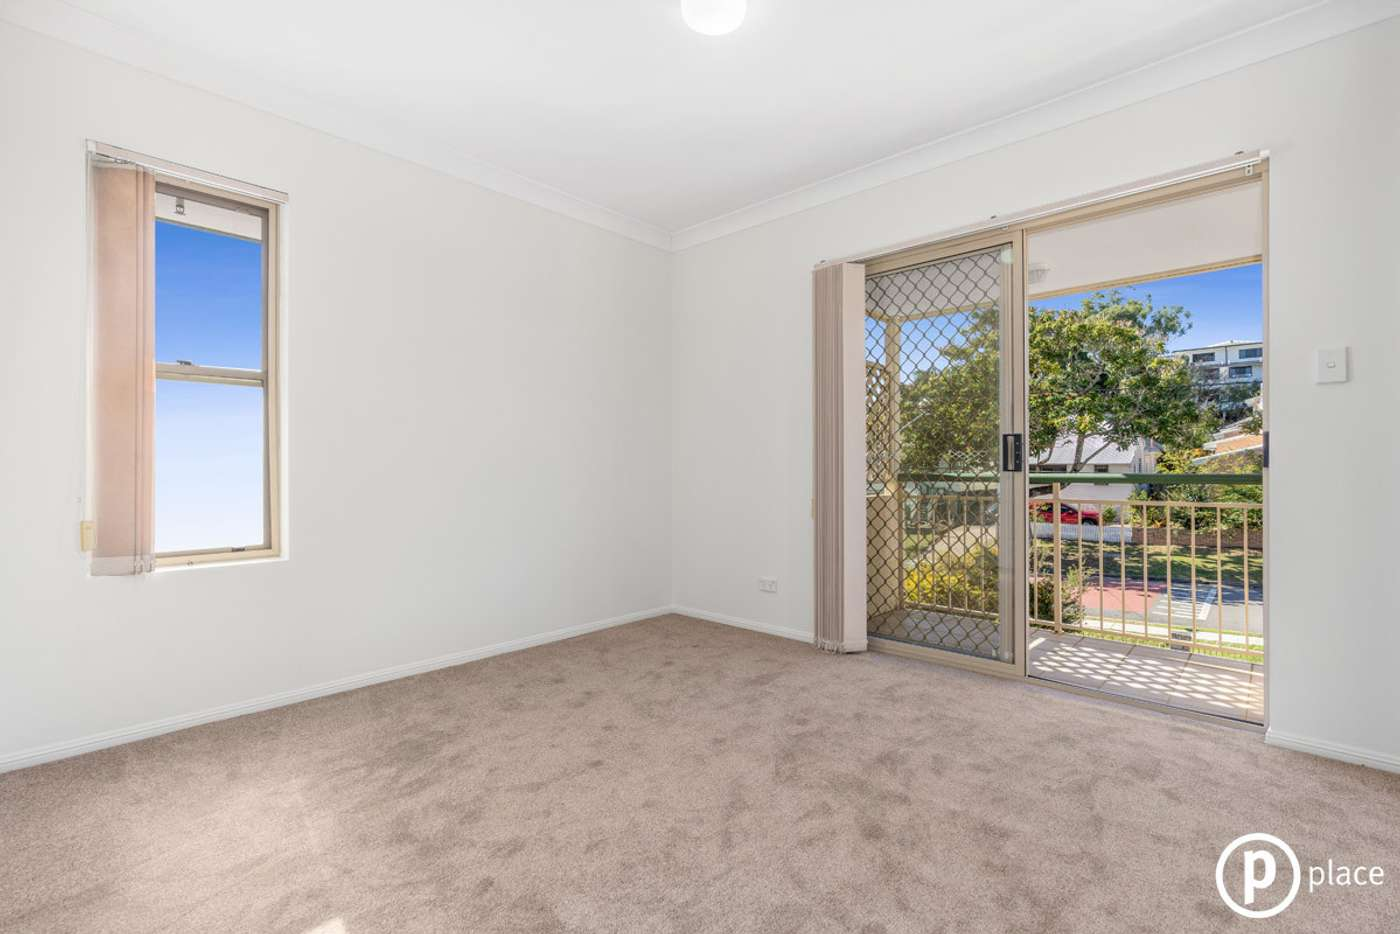 Fifth view of Homely unit listing, 7/17 Rise Street, Mount Gravatt East QLD 4122